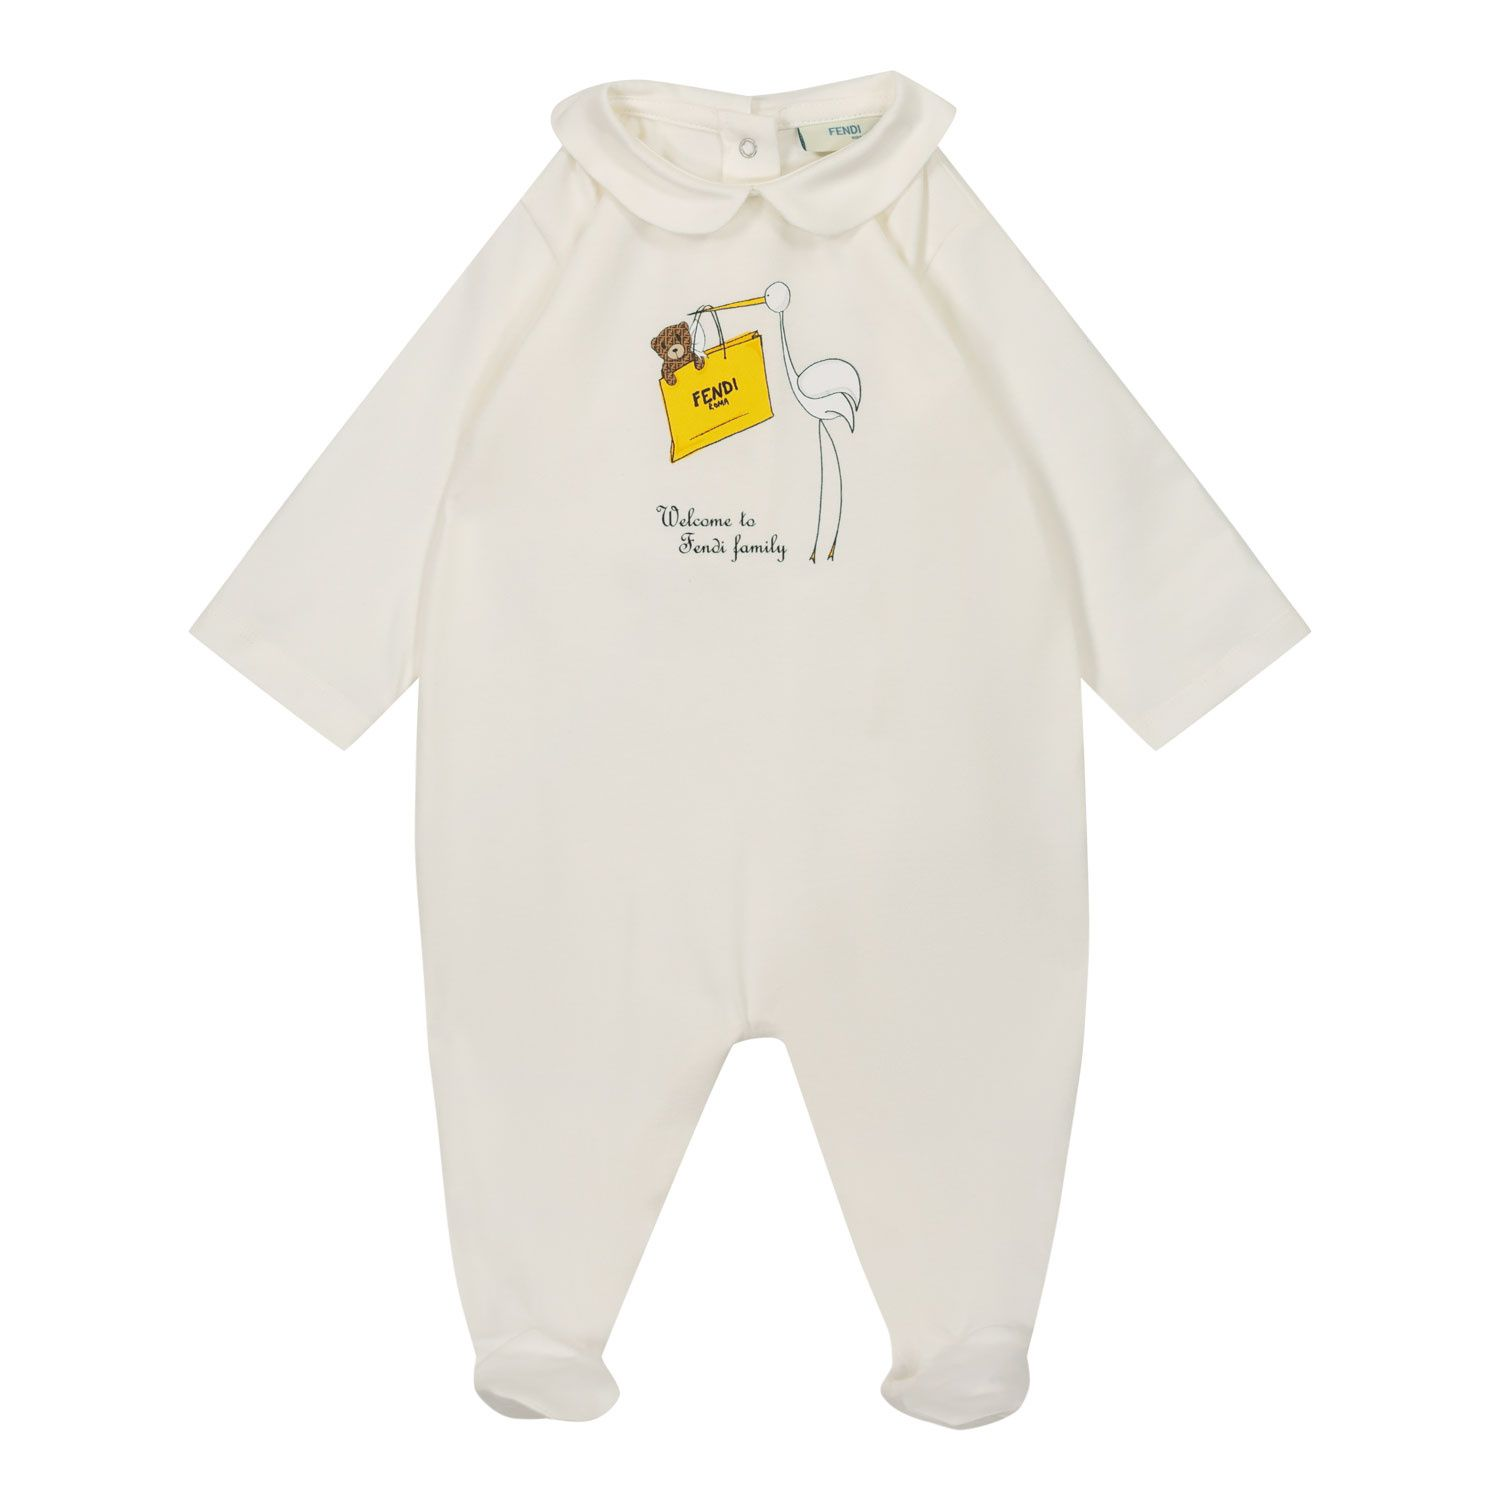 Picture of Fendi BUK078 ST8 baby playsuit white